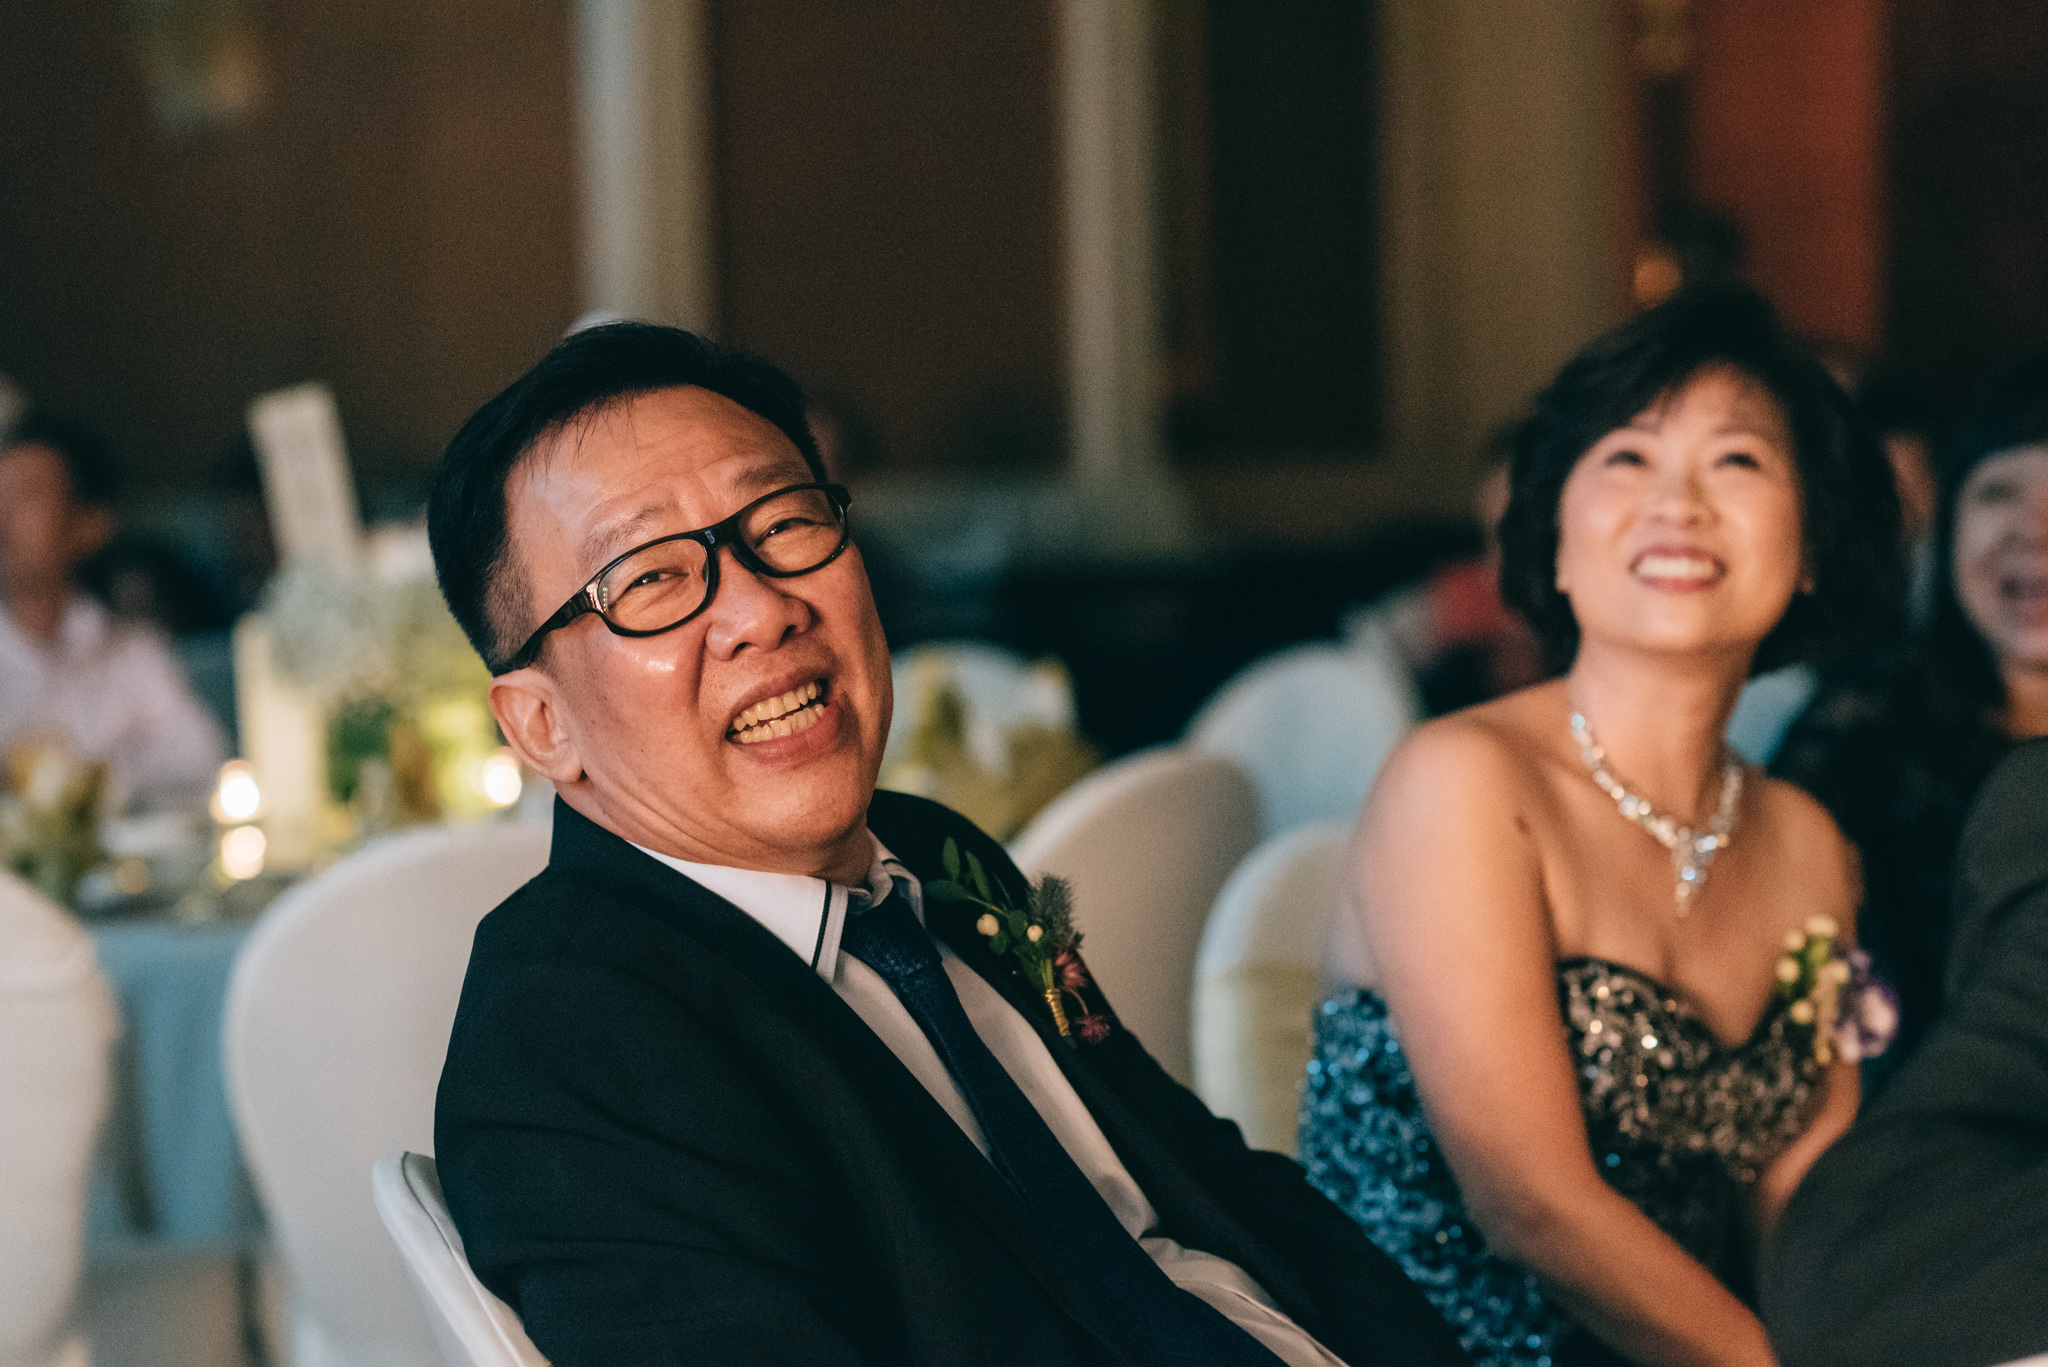 Eunice & Winshire Wedding Day Highlights (resized for sharing) - 181.jpg